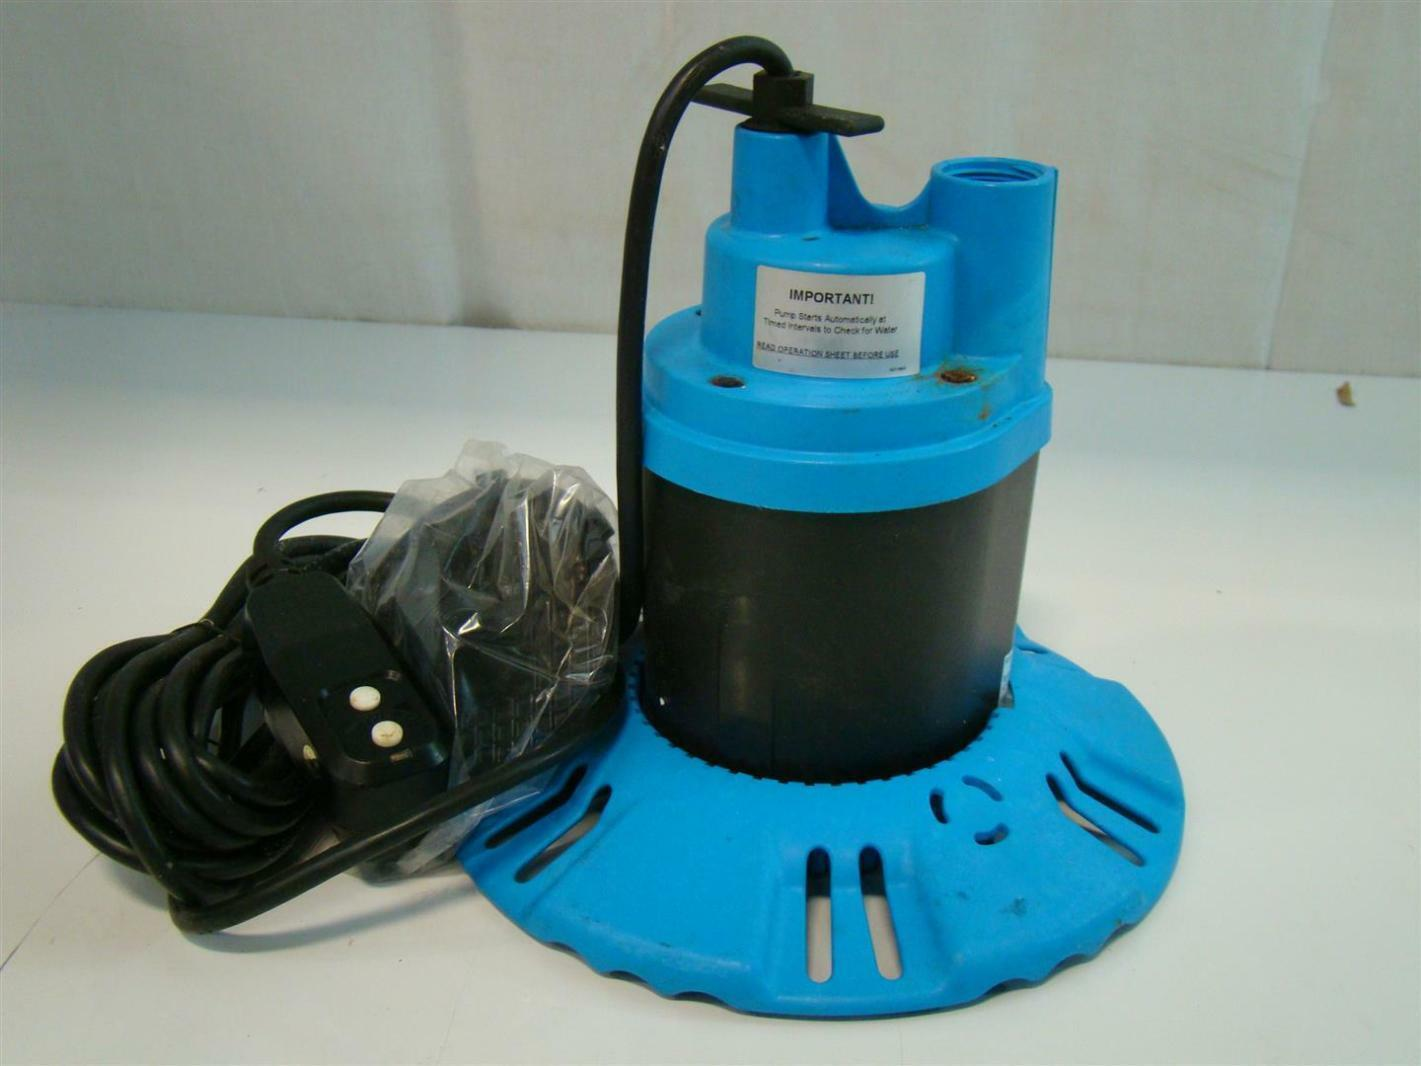 hight resolution of  flotec submersible pool spa cover pump 115v 8 5amps 1 4hp 25 fp0s1790pca